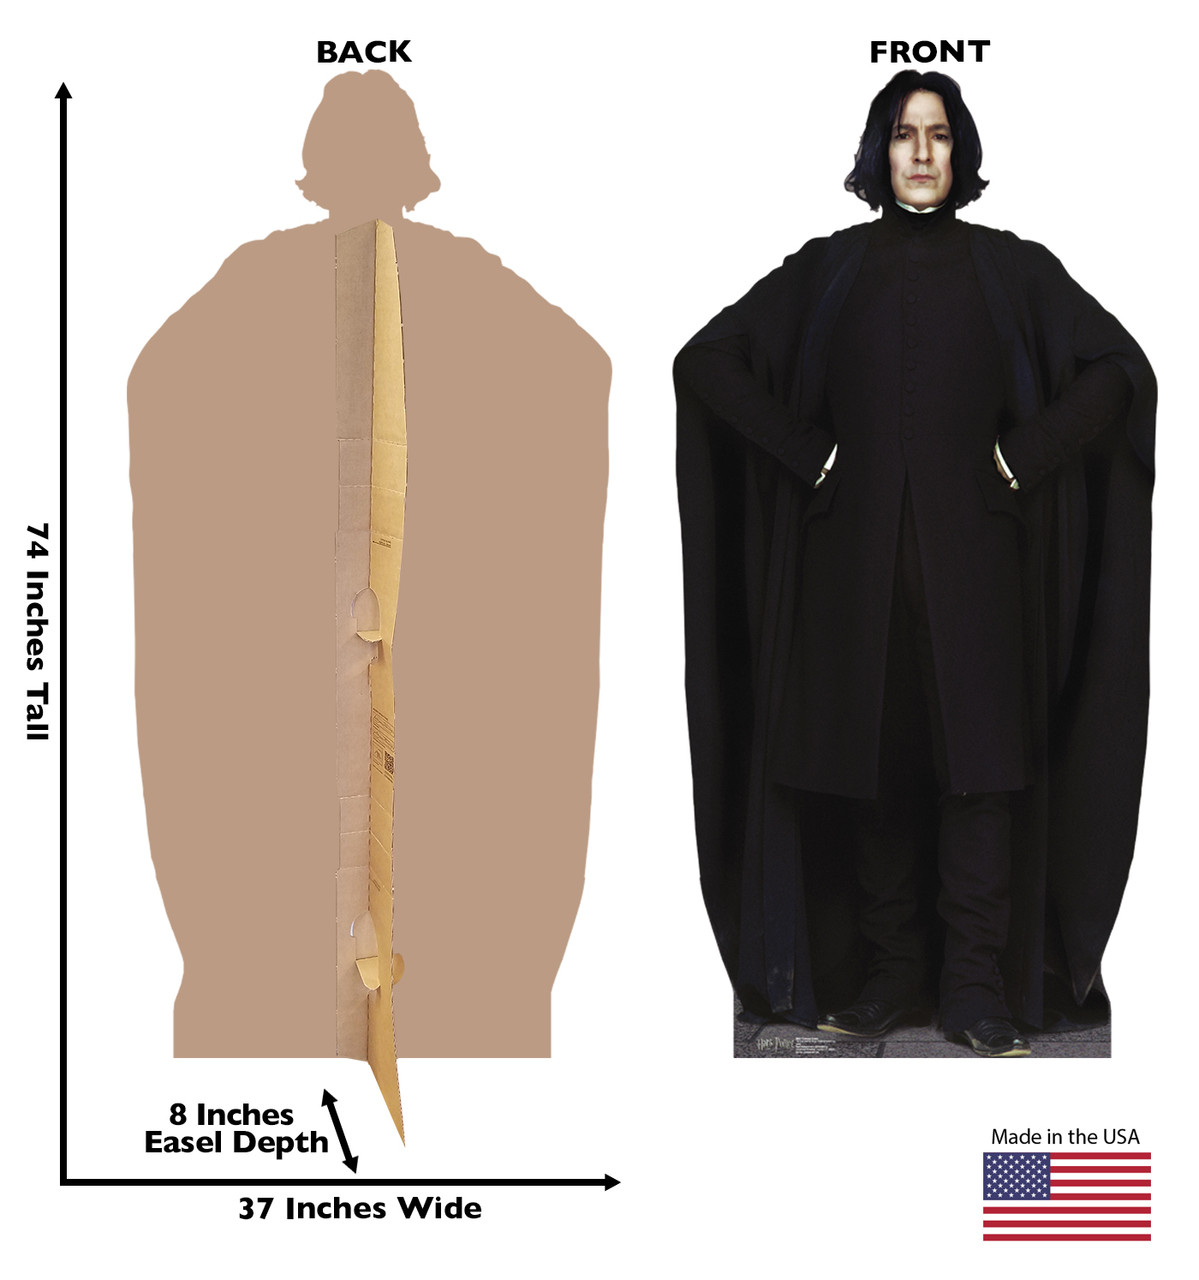 Life-size Professor Snape from Harry Potter Cardboard Standup